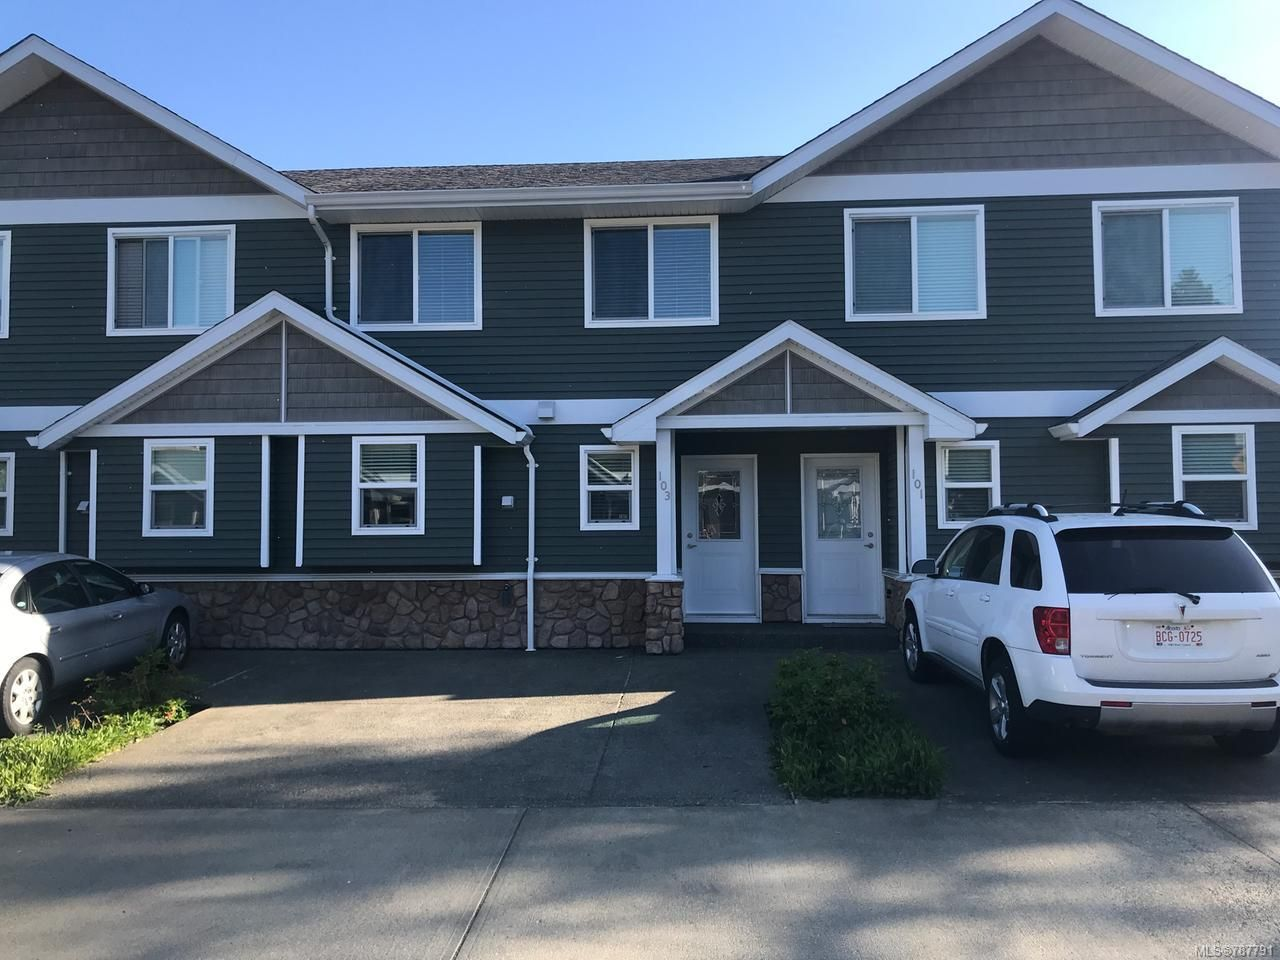 Main Photo: 103 170 CENTENNIAL DRIVE in COURTENAY: CV Courtenay East Row/Townhouse for sale (Comox Valley)  : MLS®# 787791